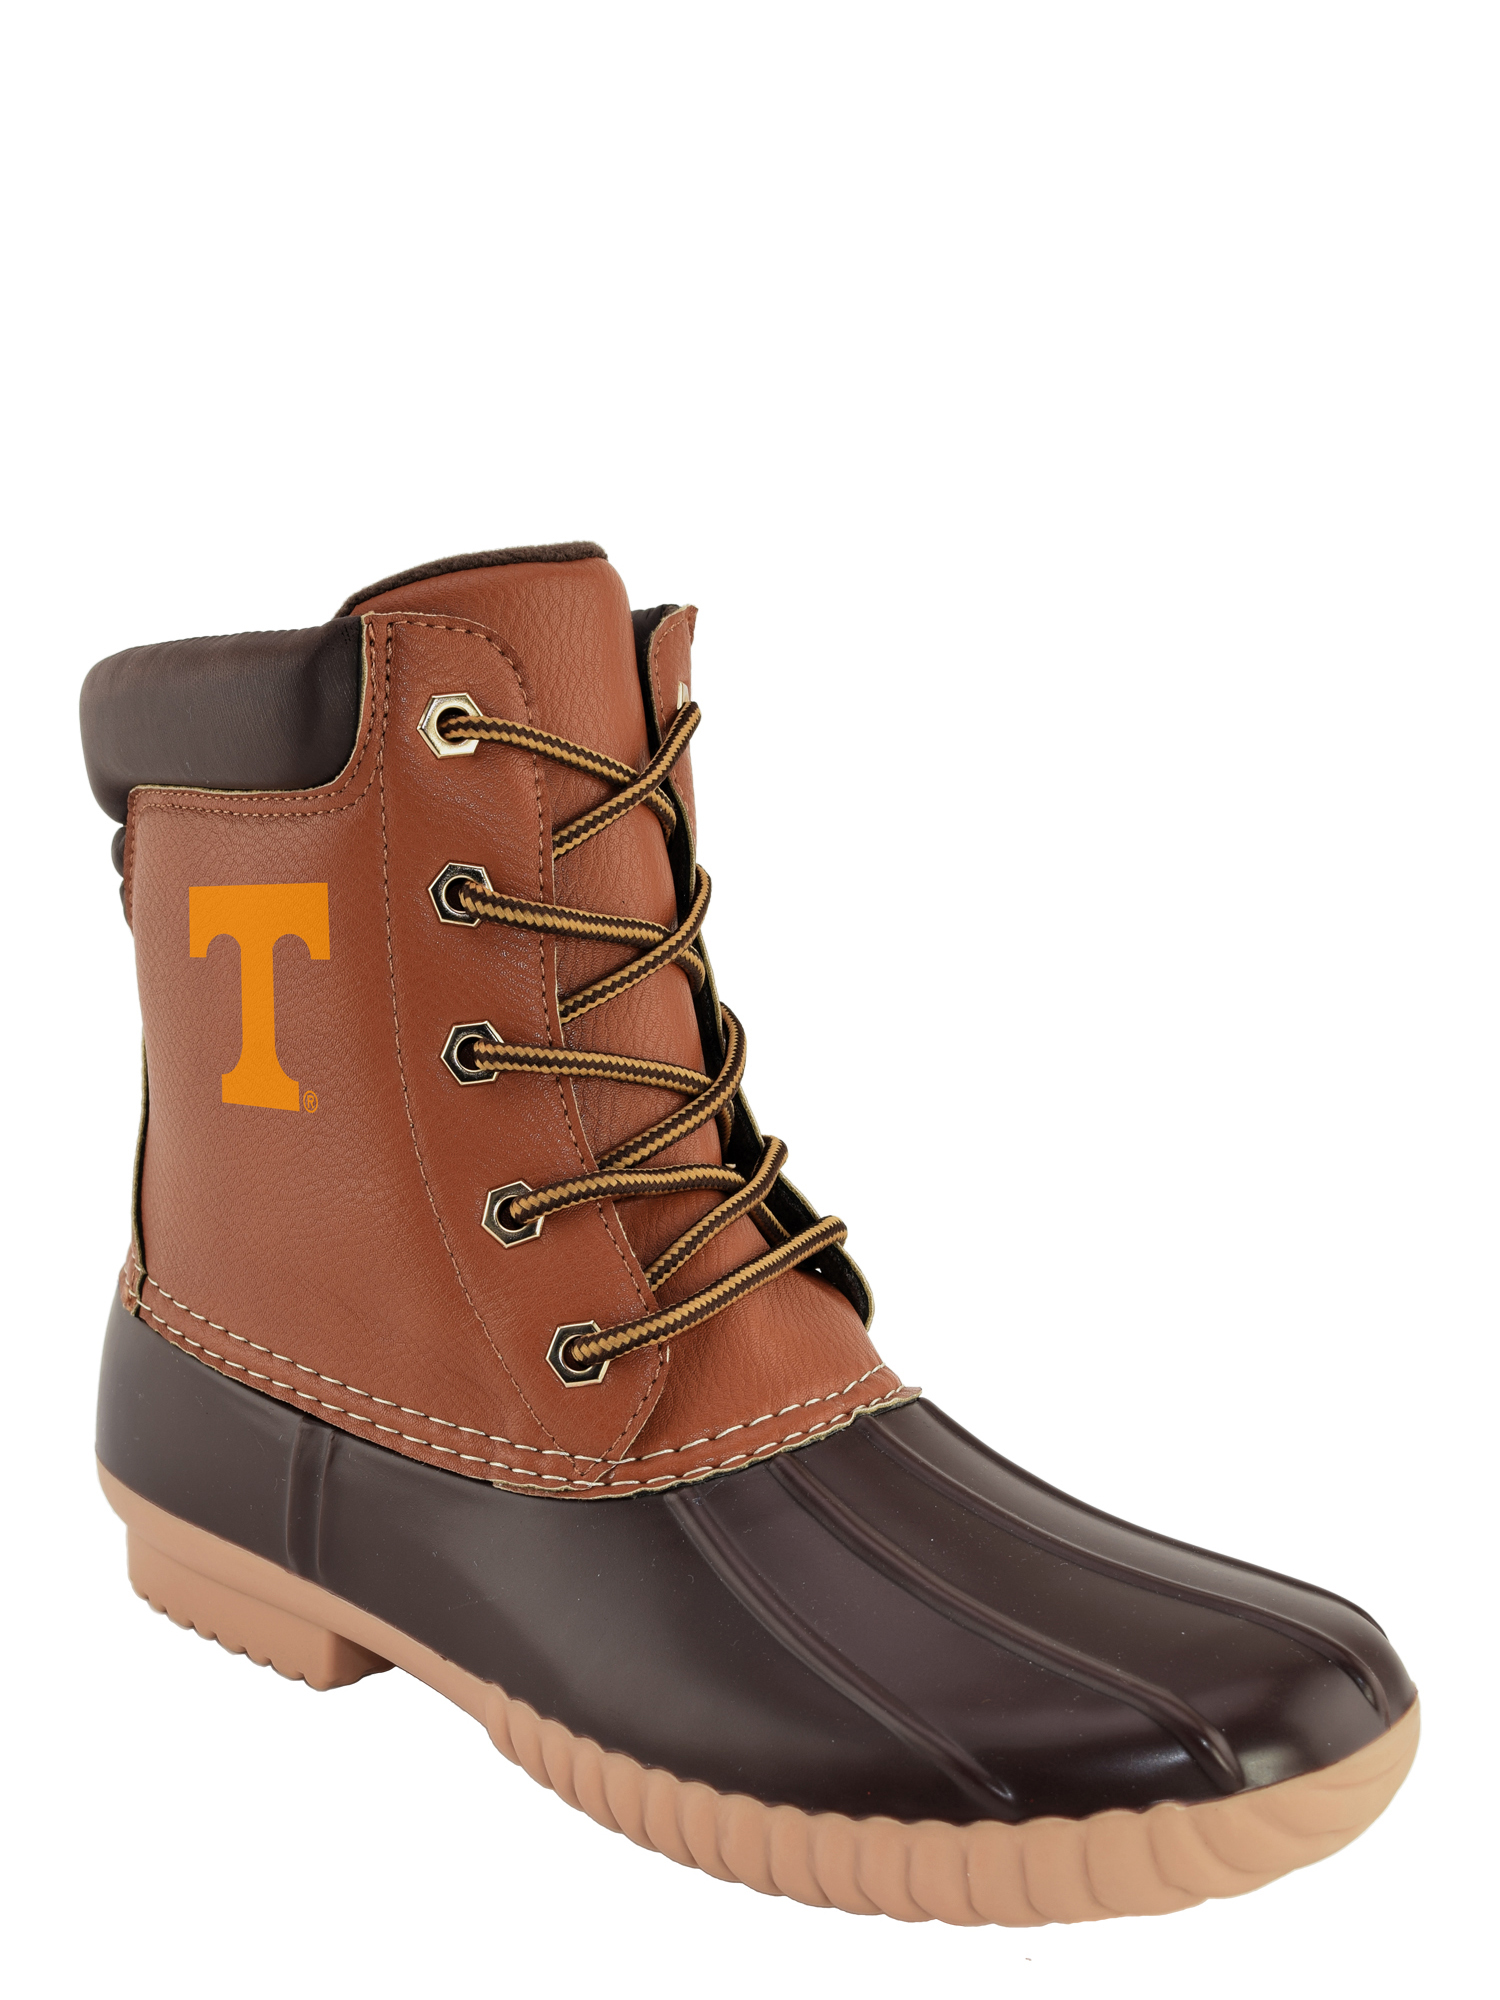 NCAA Men's Tennessee -Duck Boot by RENAISSANCE IMPORTS INC